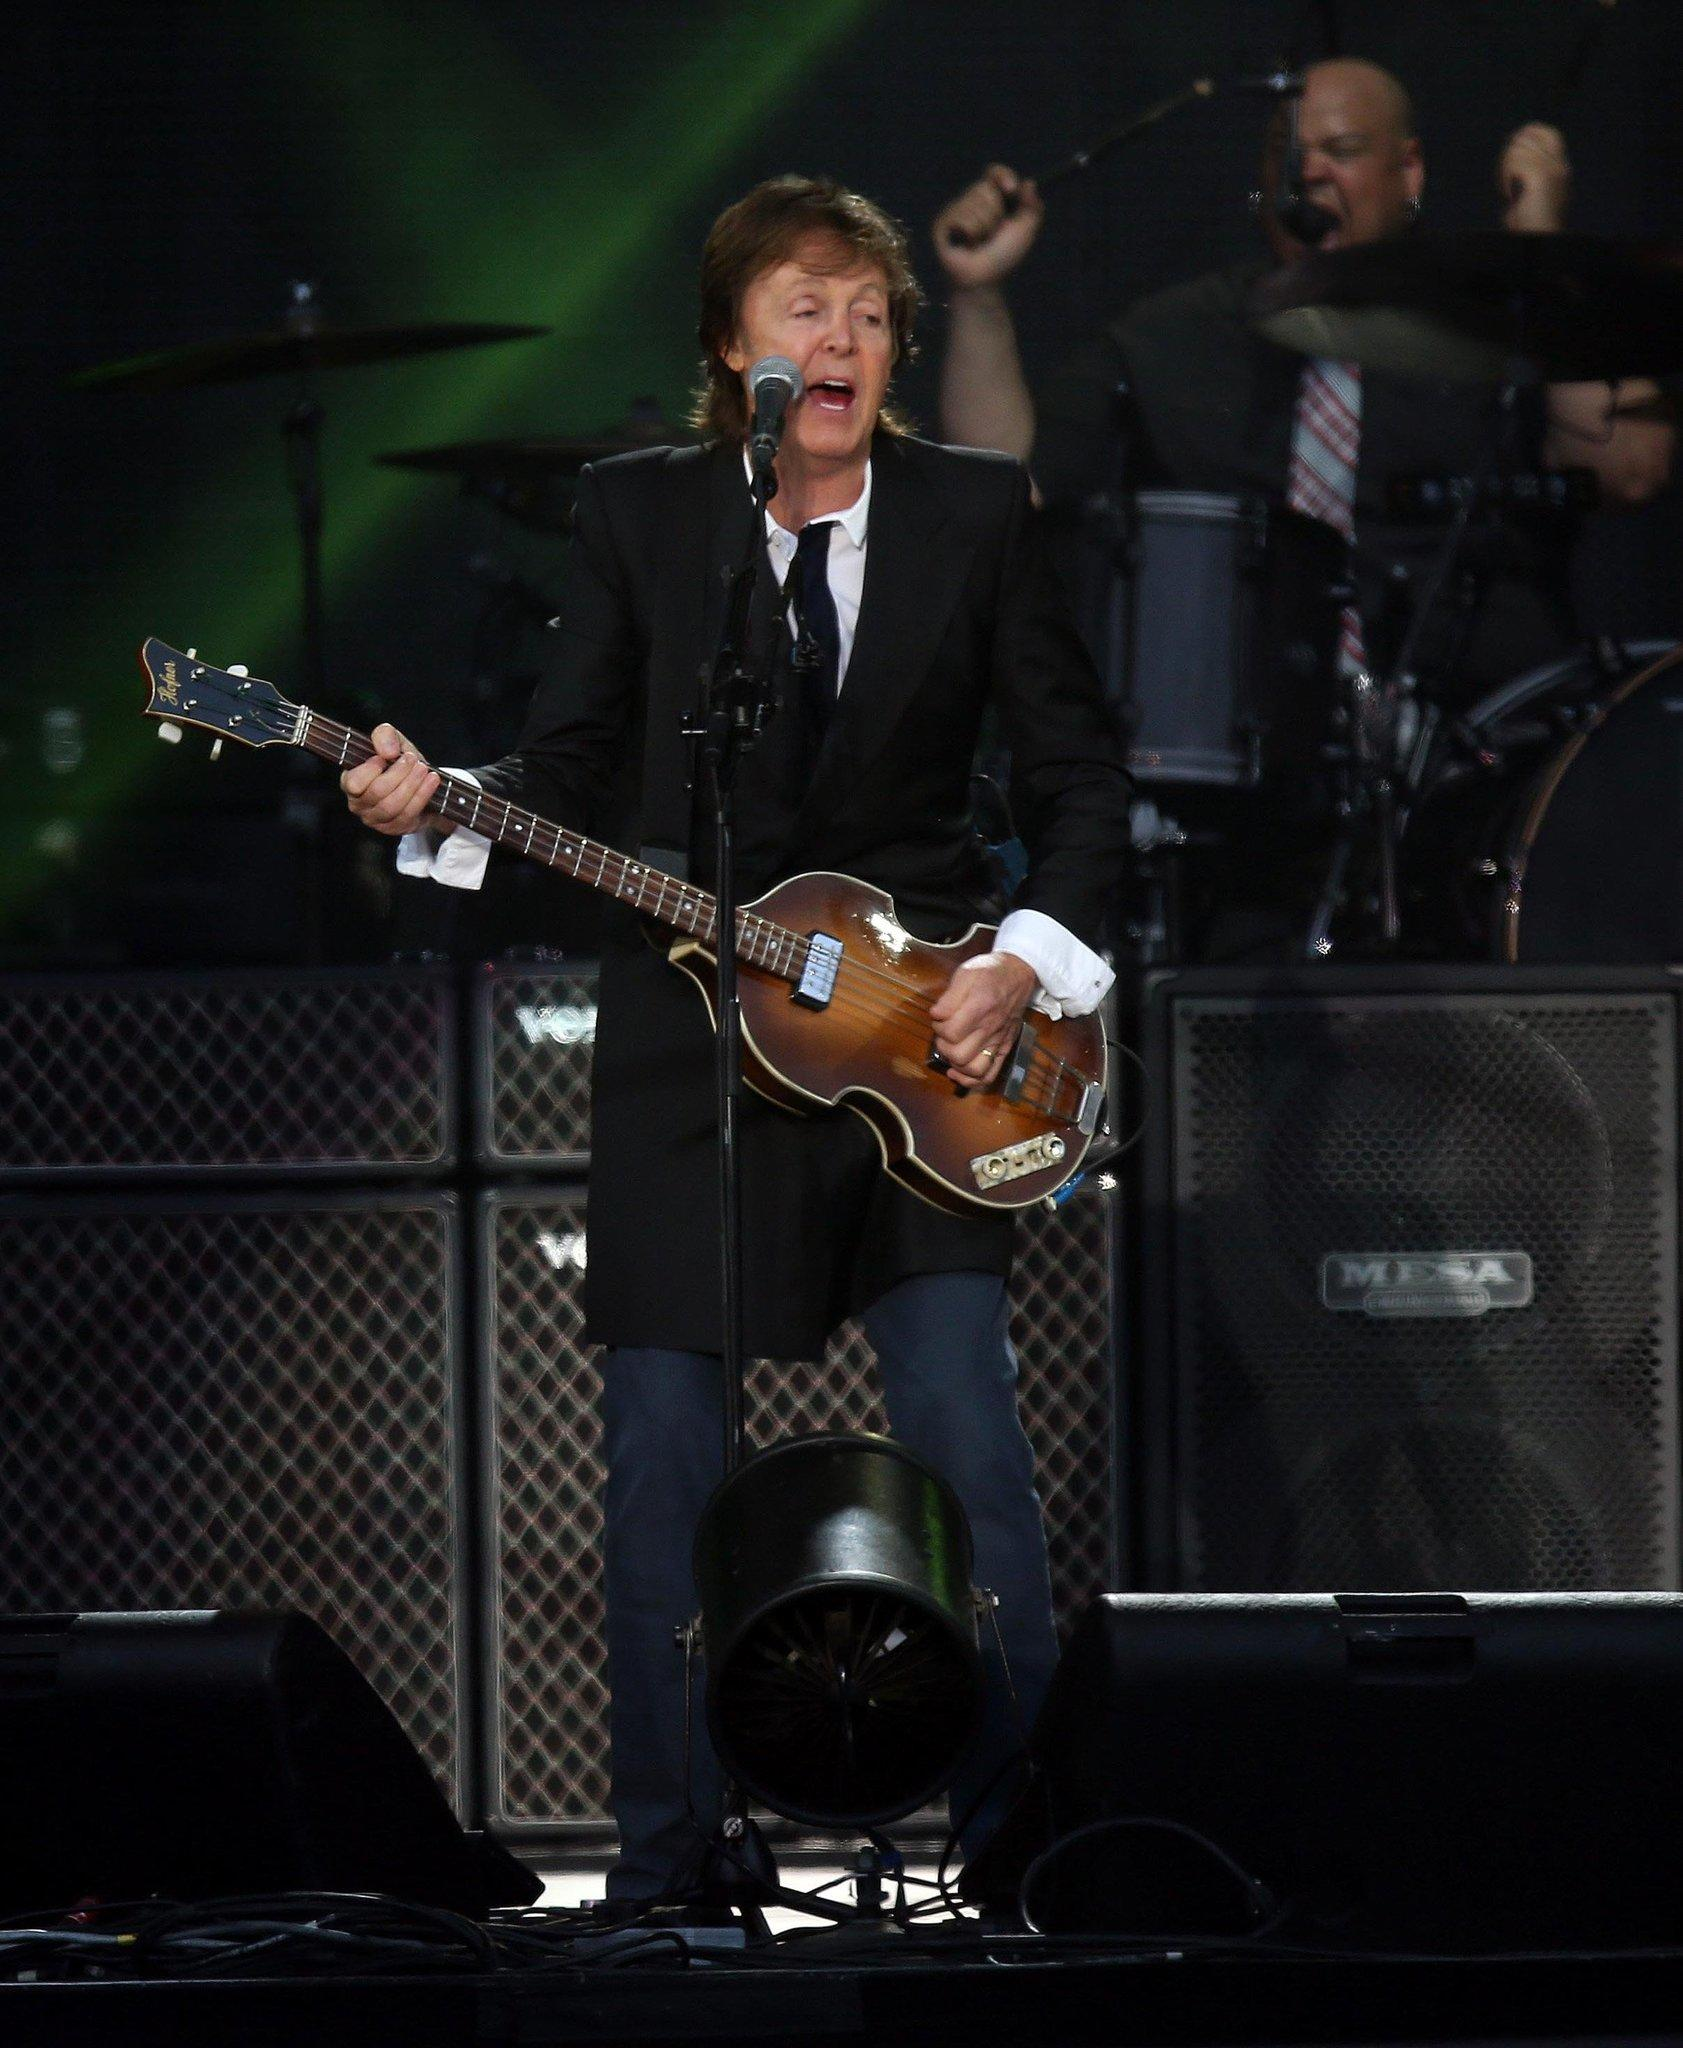 Paul McCartney headlines on the Land's End stage during the 6th annual Outside Lands Music and Arts Festival in Golden Gate Park in San Francisco, California.